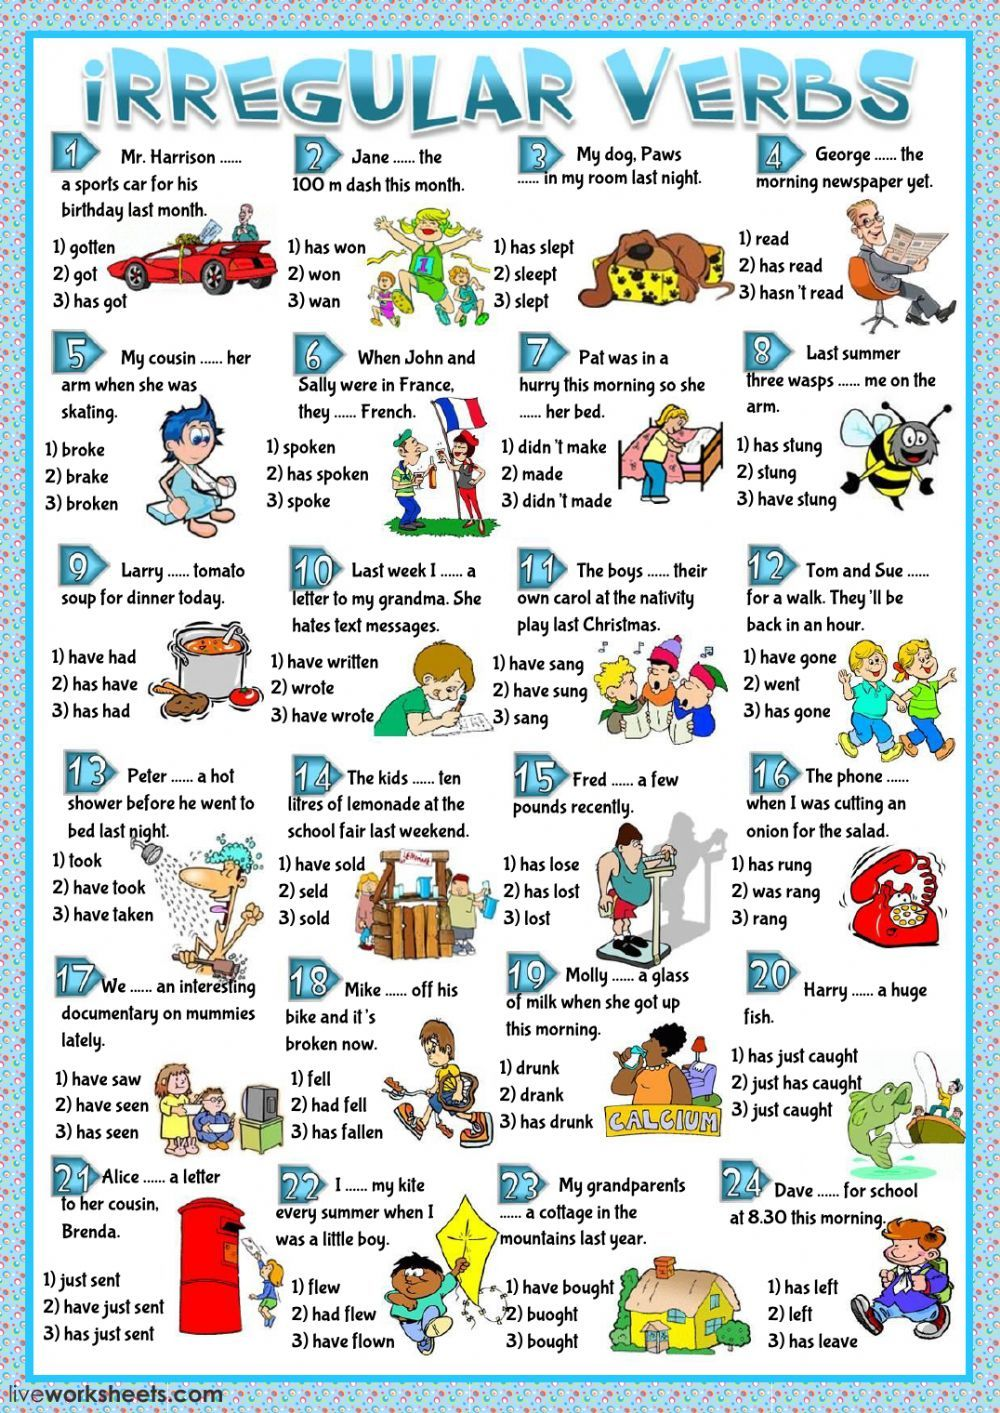 Irregular verbs interactive and downloadable worksheet  You can do